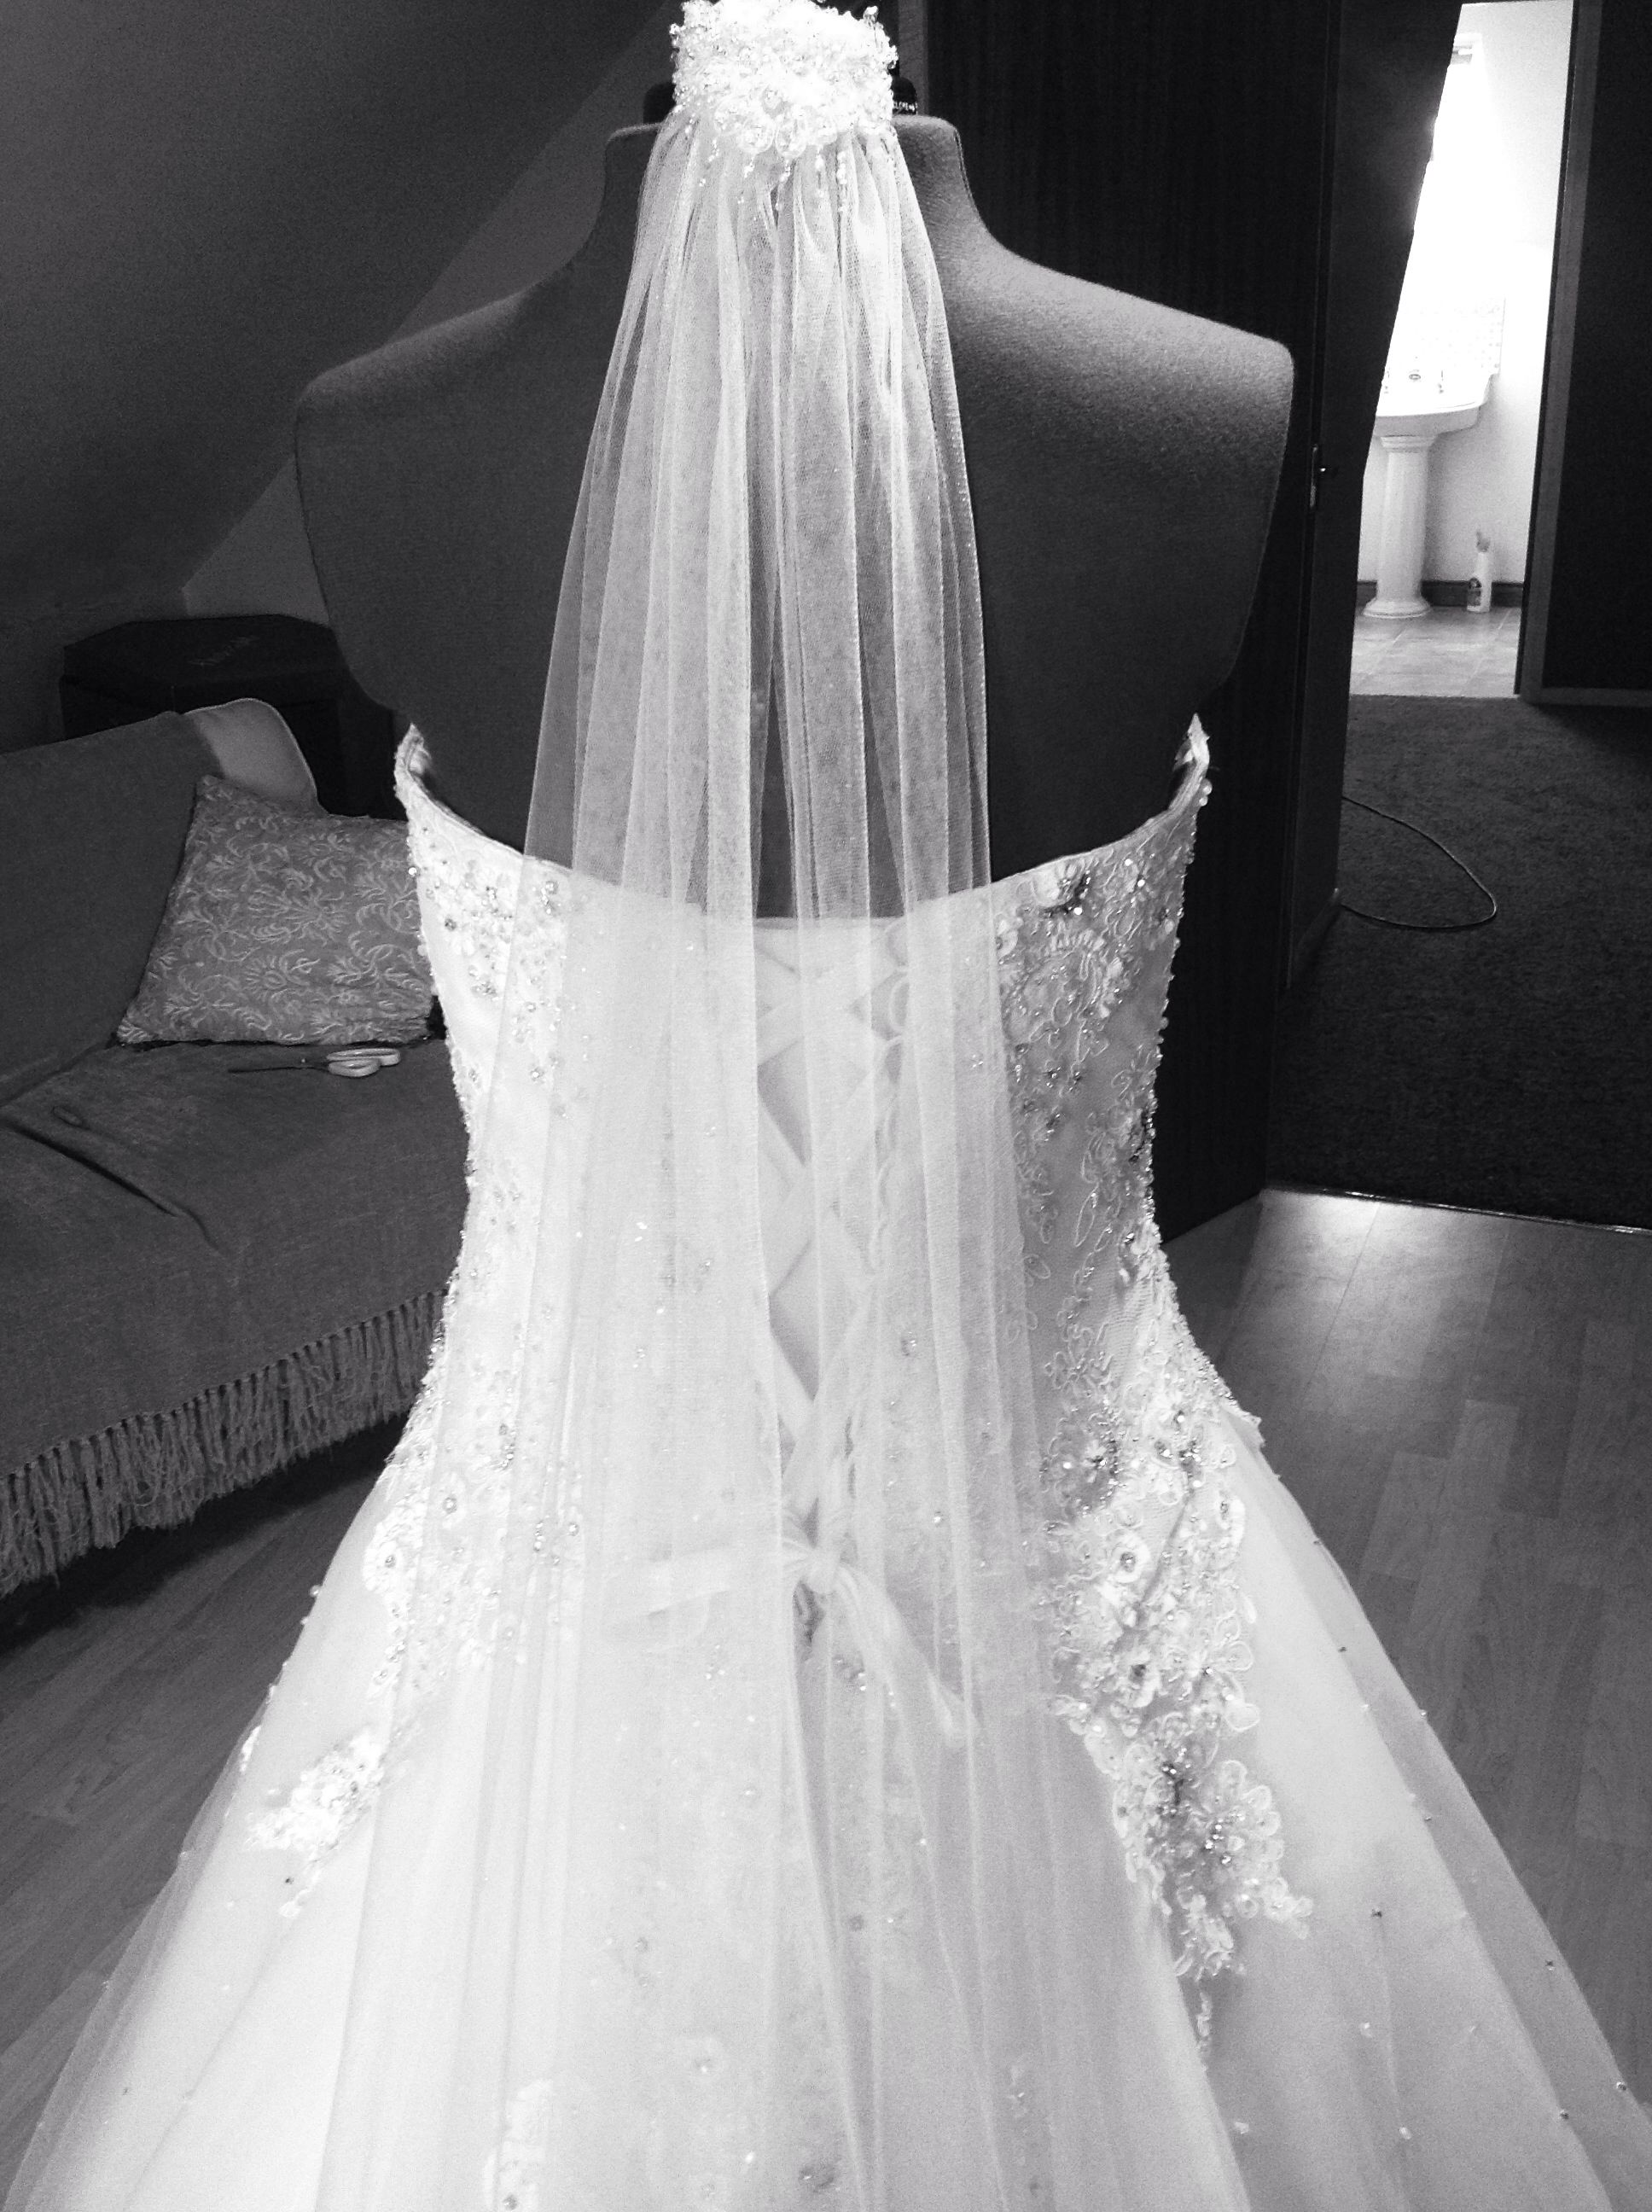 Skinny veil and bridal gown back detail